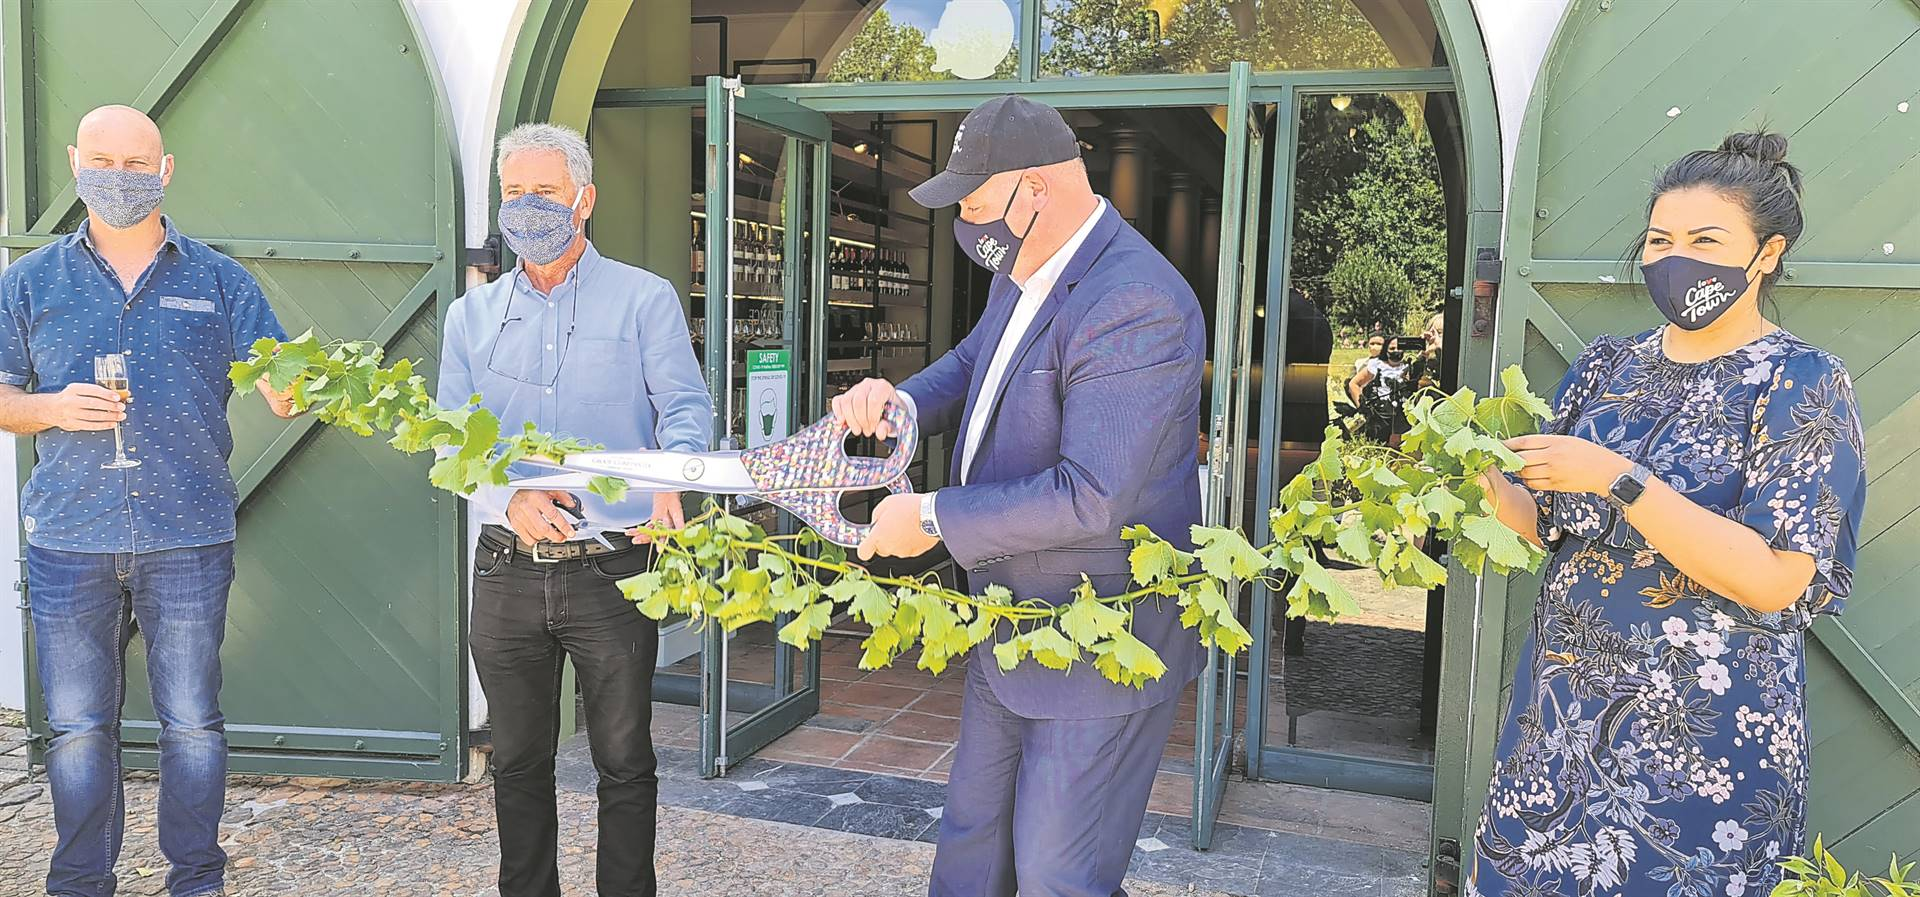 Floricius Beukes, manager and viticulturist for Groot Constantia; Jean Naudé, CEO Groot Constantia; James Vos, Mayco member for economic opportunities and asset management; and Lila Jutzen, sales and marketing Groot Constantia; at the opening of the gift shop.